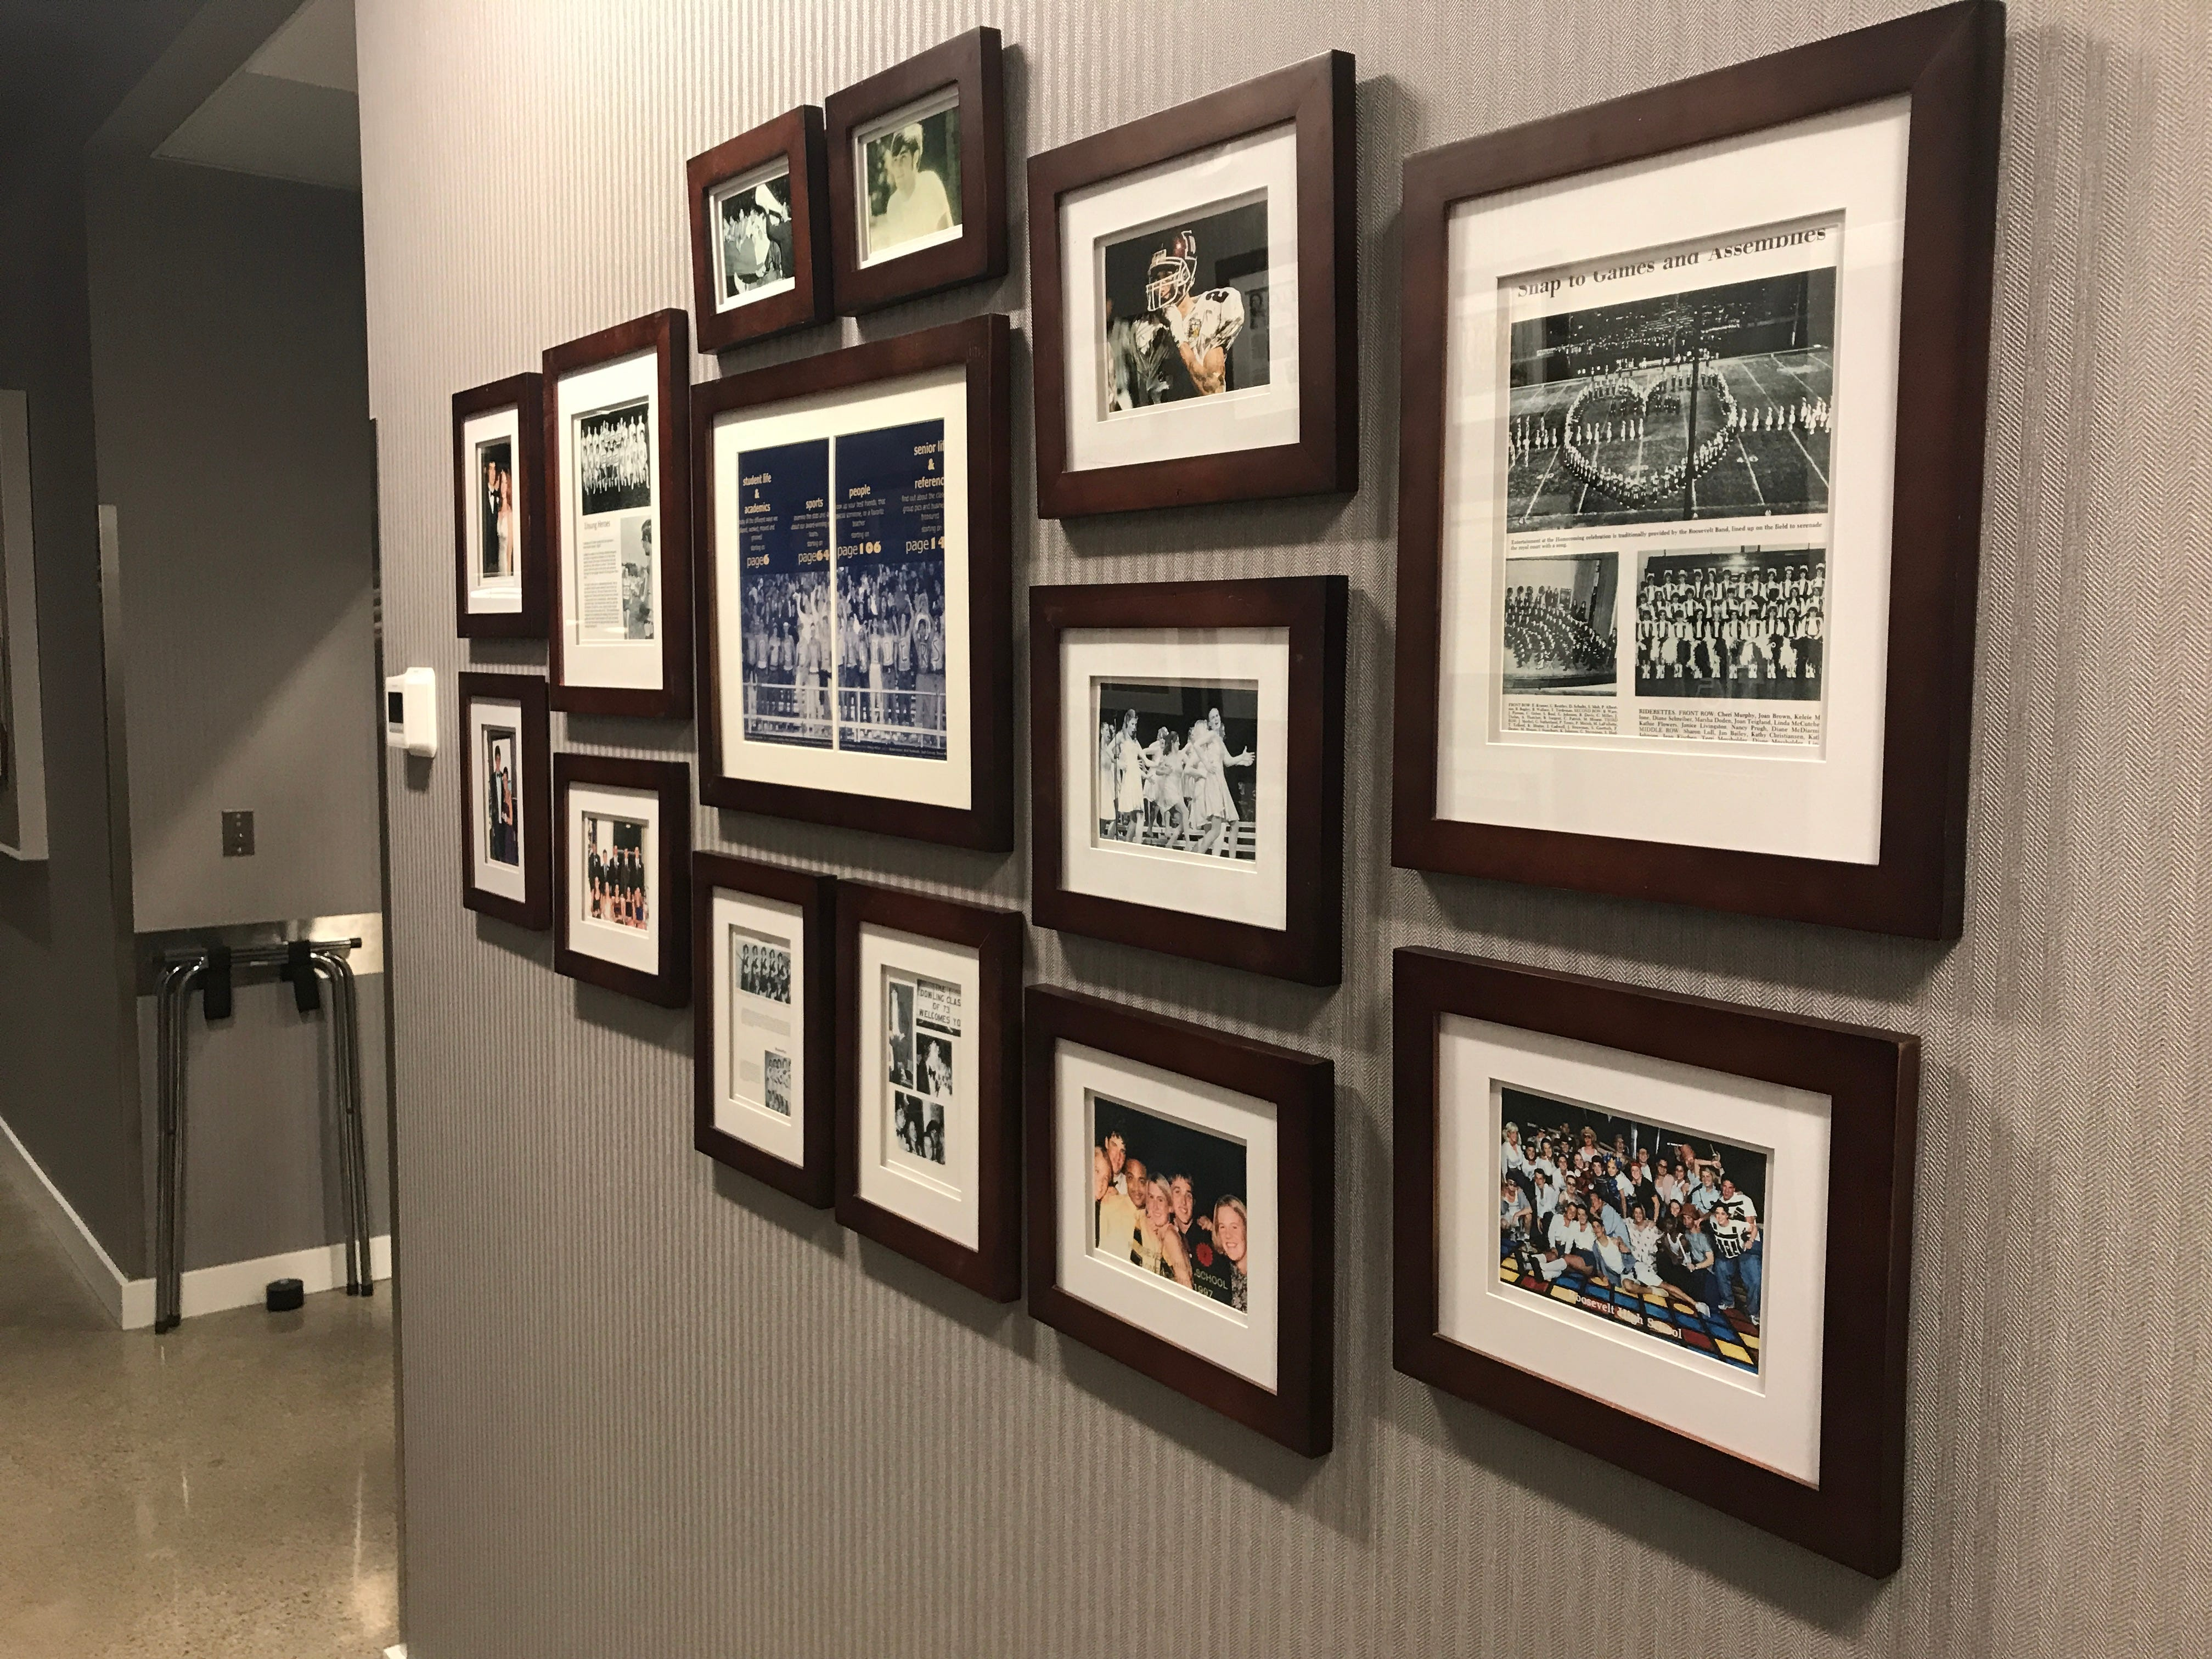 A wall at Teddy Maroon's features clippings from old yearbooks from Des Moines high schools.